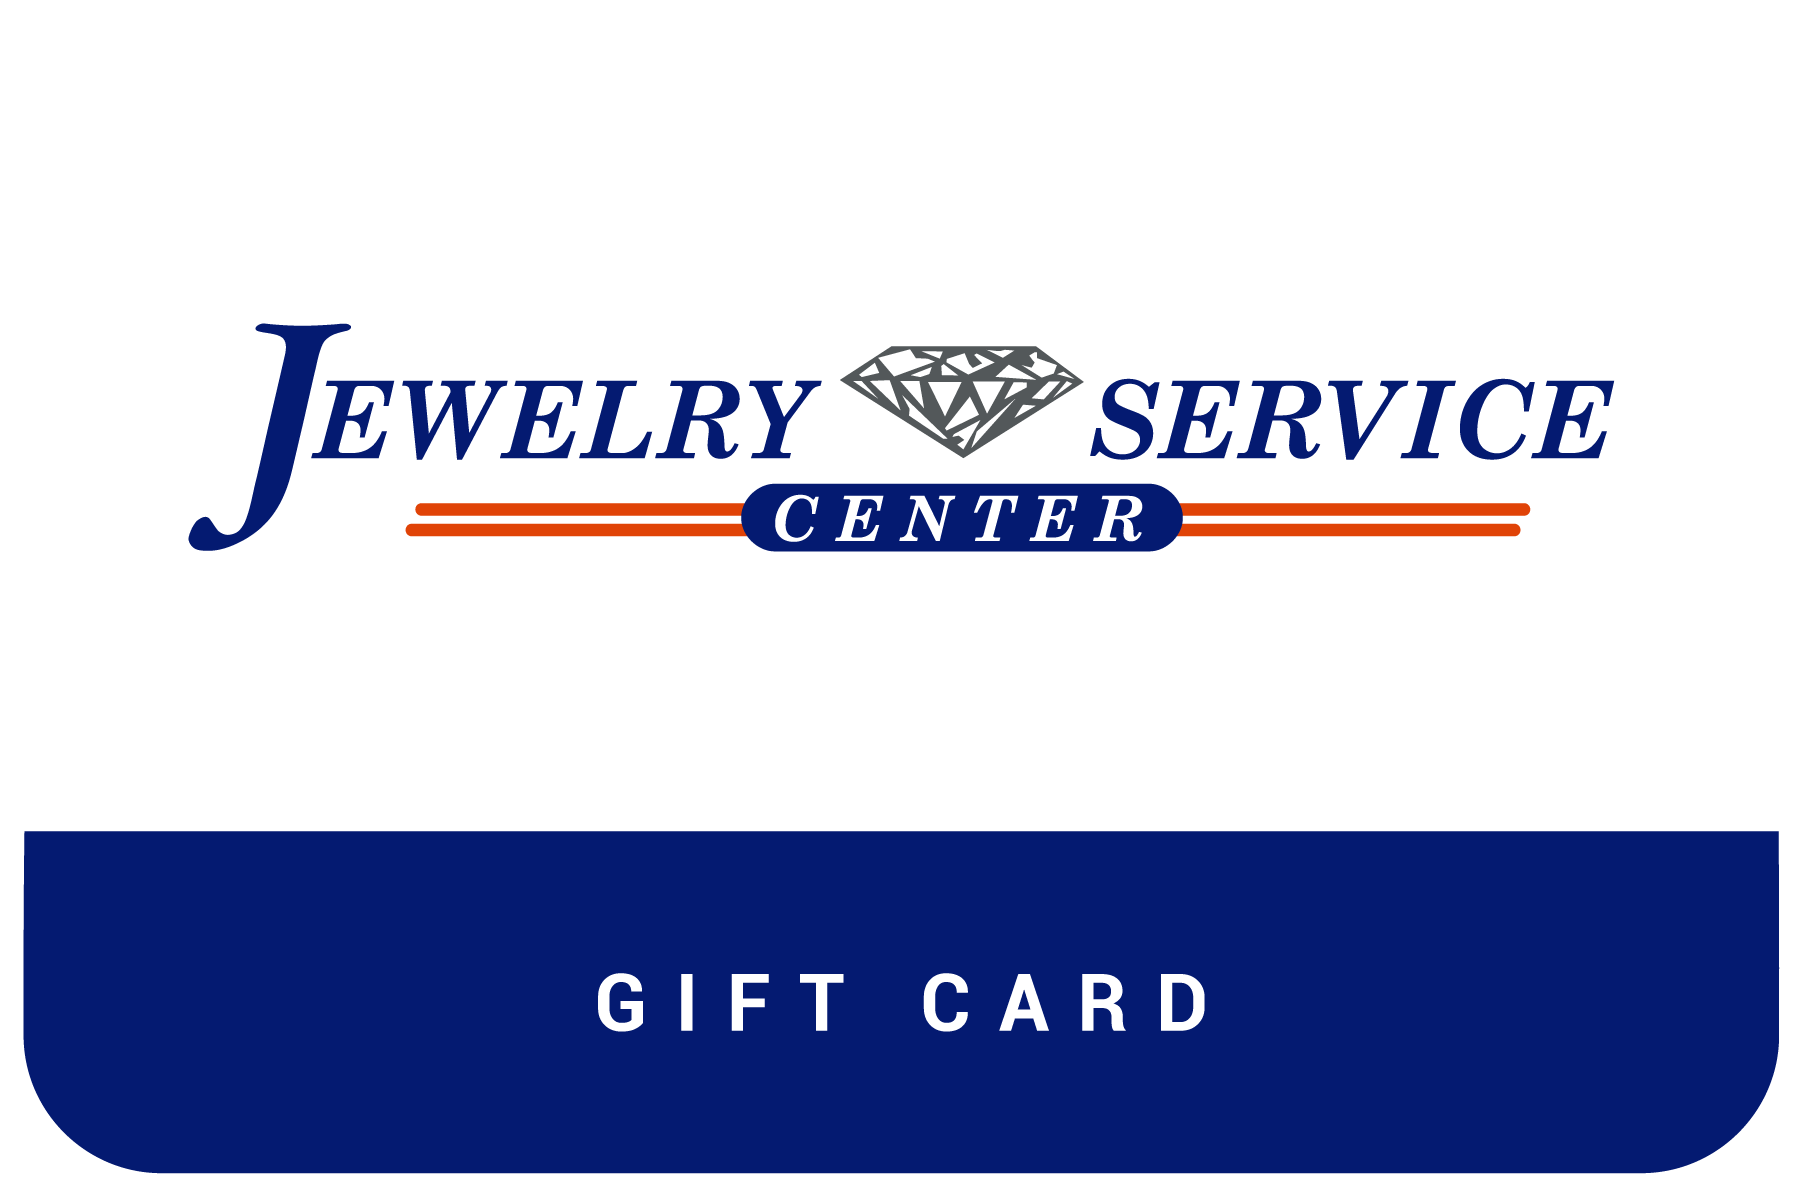 Jewelry Service Center $50 Gift Card